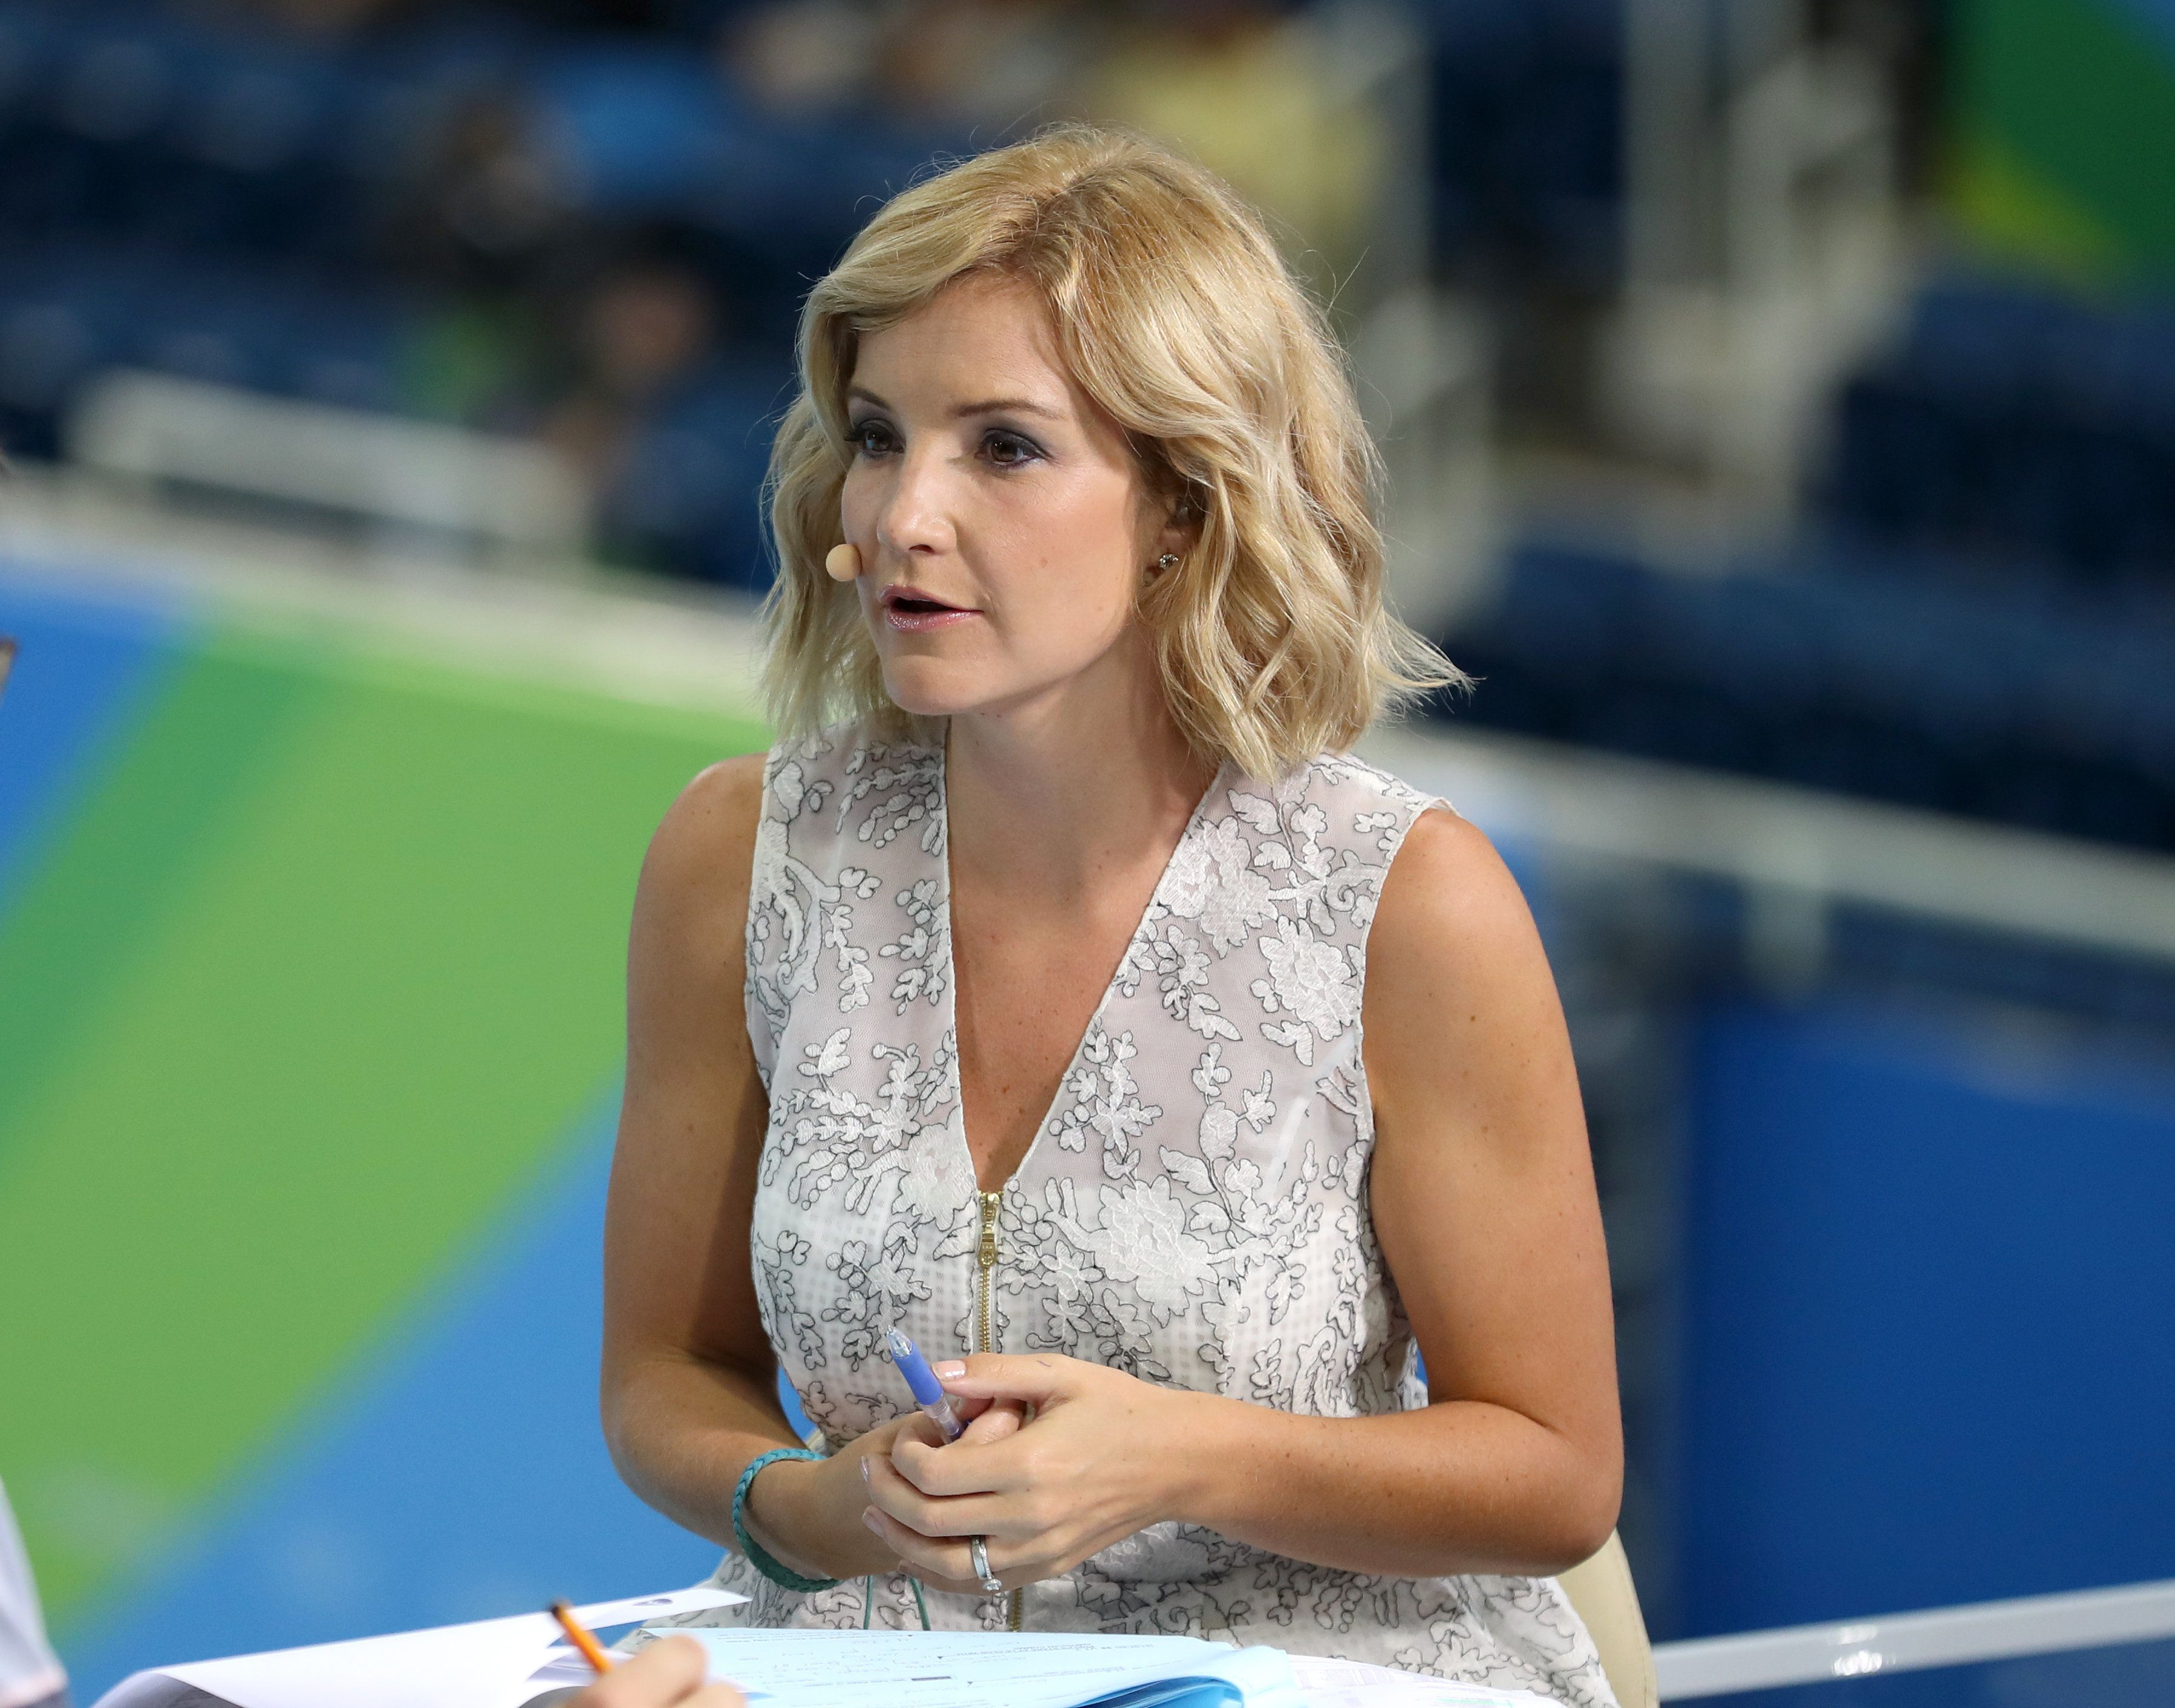 Helen Skelton To Fill Lorraine Kelly's Shoes With ITV Daytime